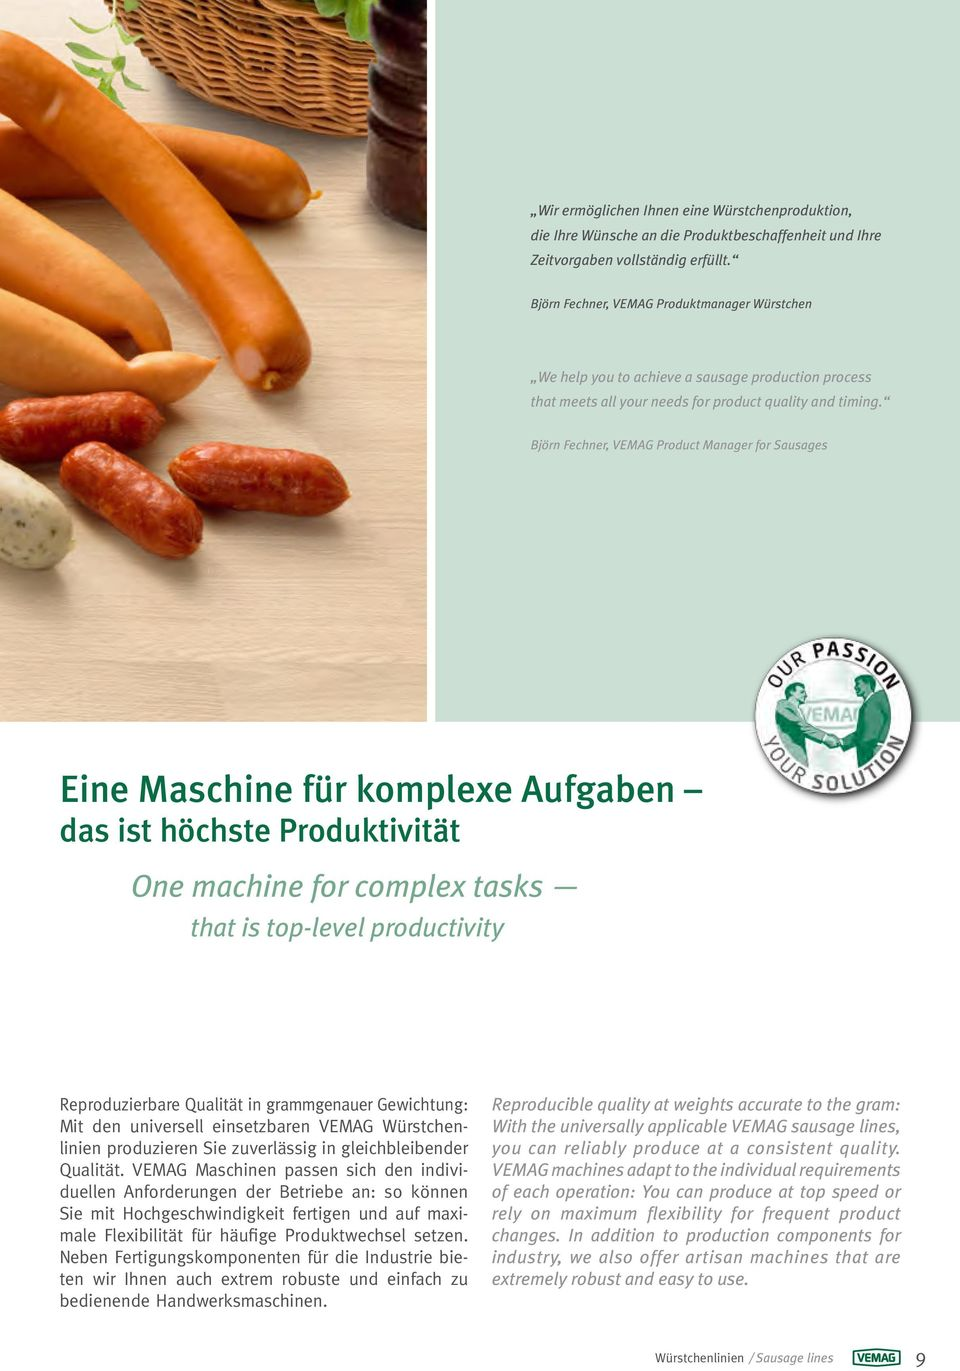 Björn Fechner, VEMAG Product Manager for Sausages Eine Maschine für komplexe Aufgaben das ist höchste Produktivität One machine for complex tasks that is top-level productivity Reproduzierbare